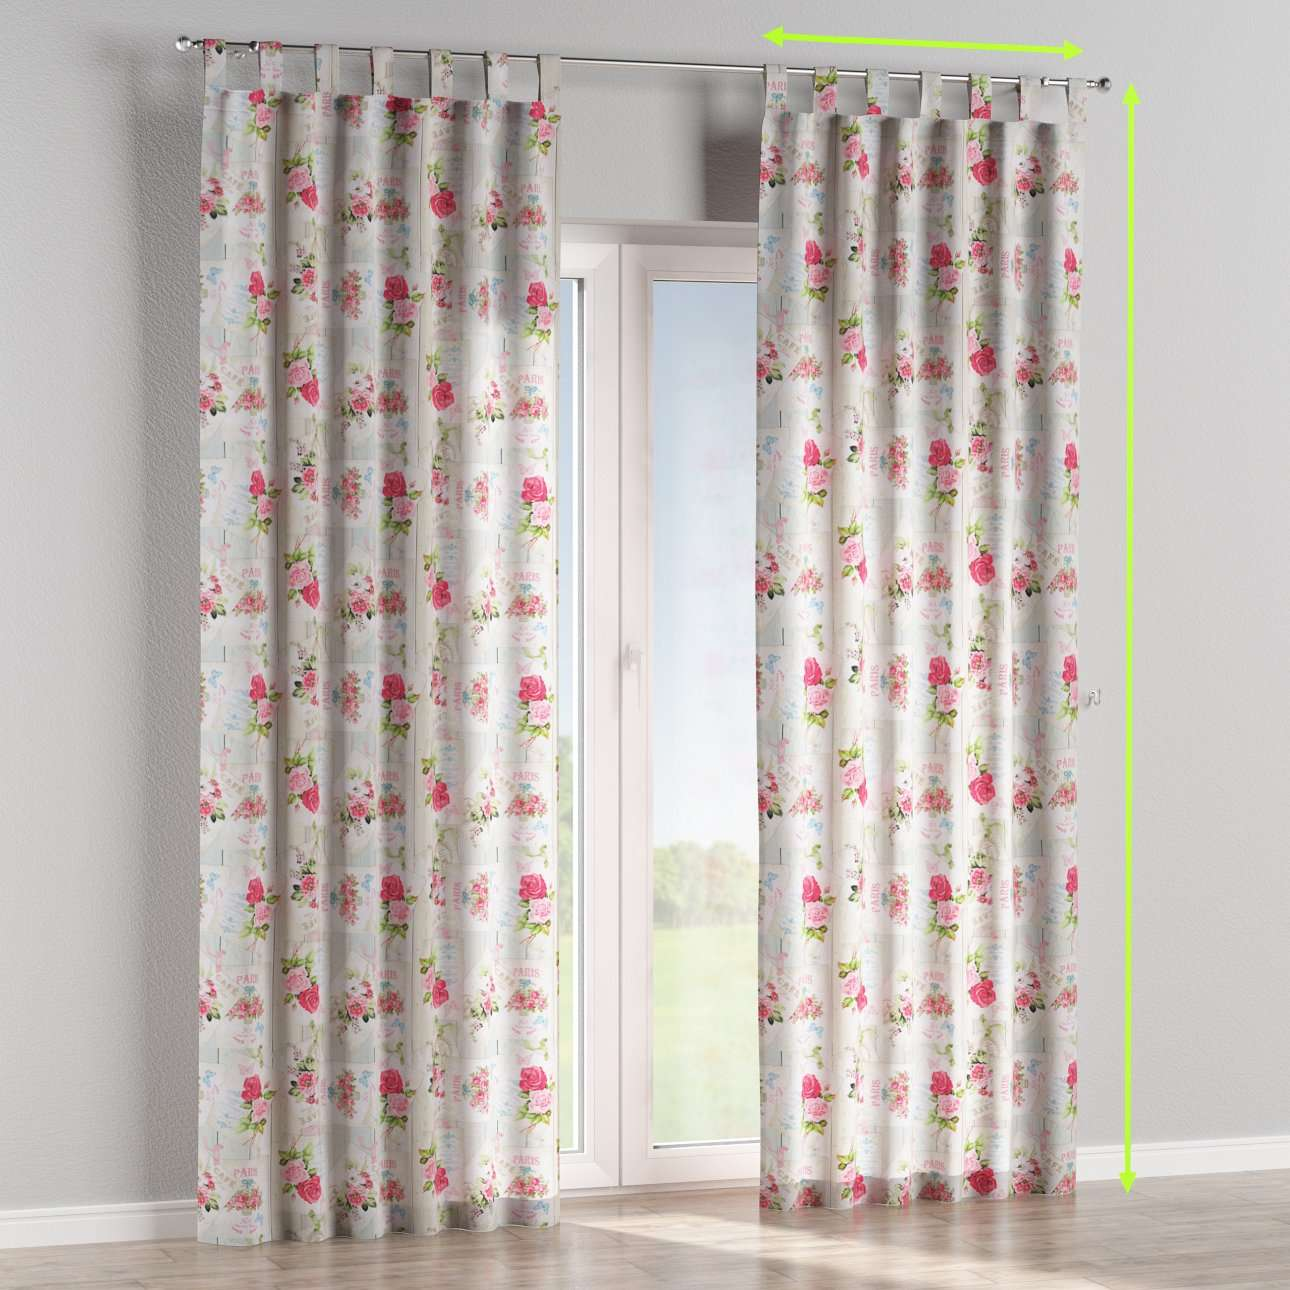 Tab top lined curtains in collection Ashley, fabric: 140-19